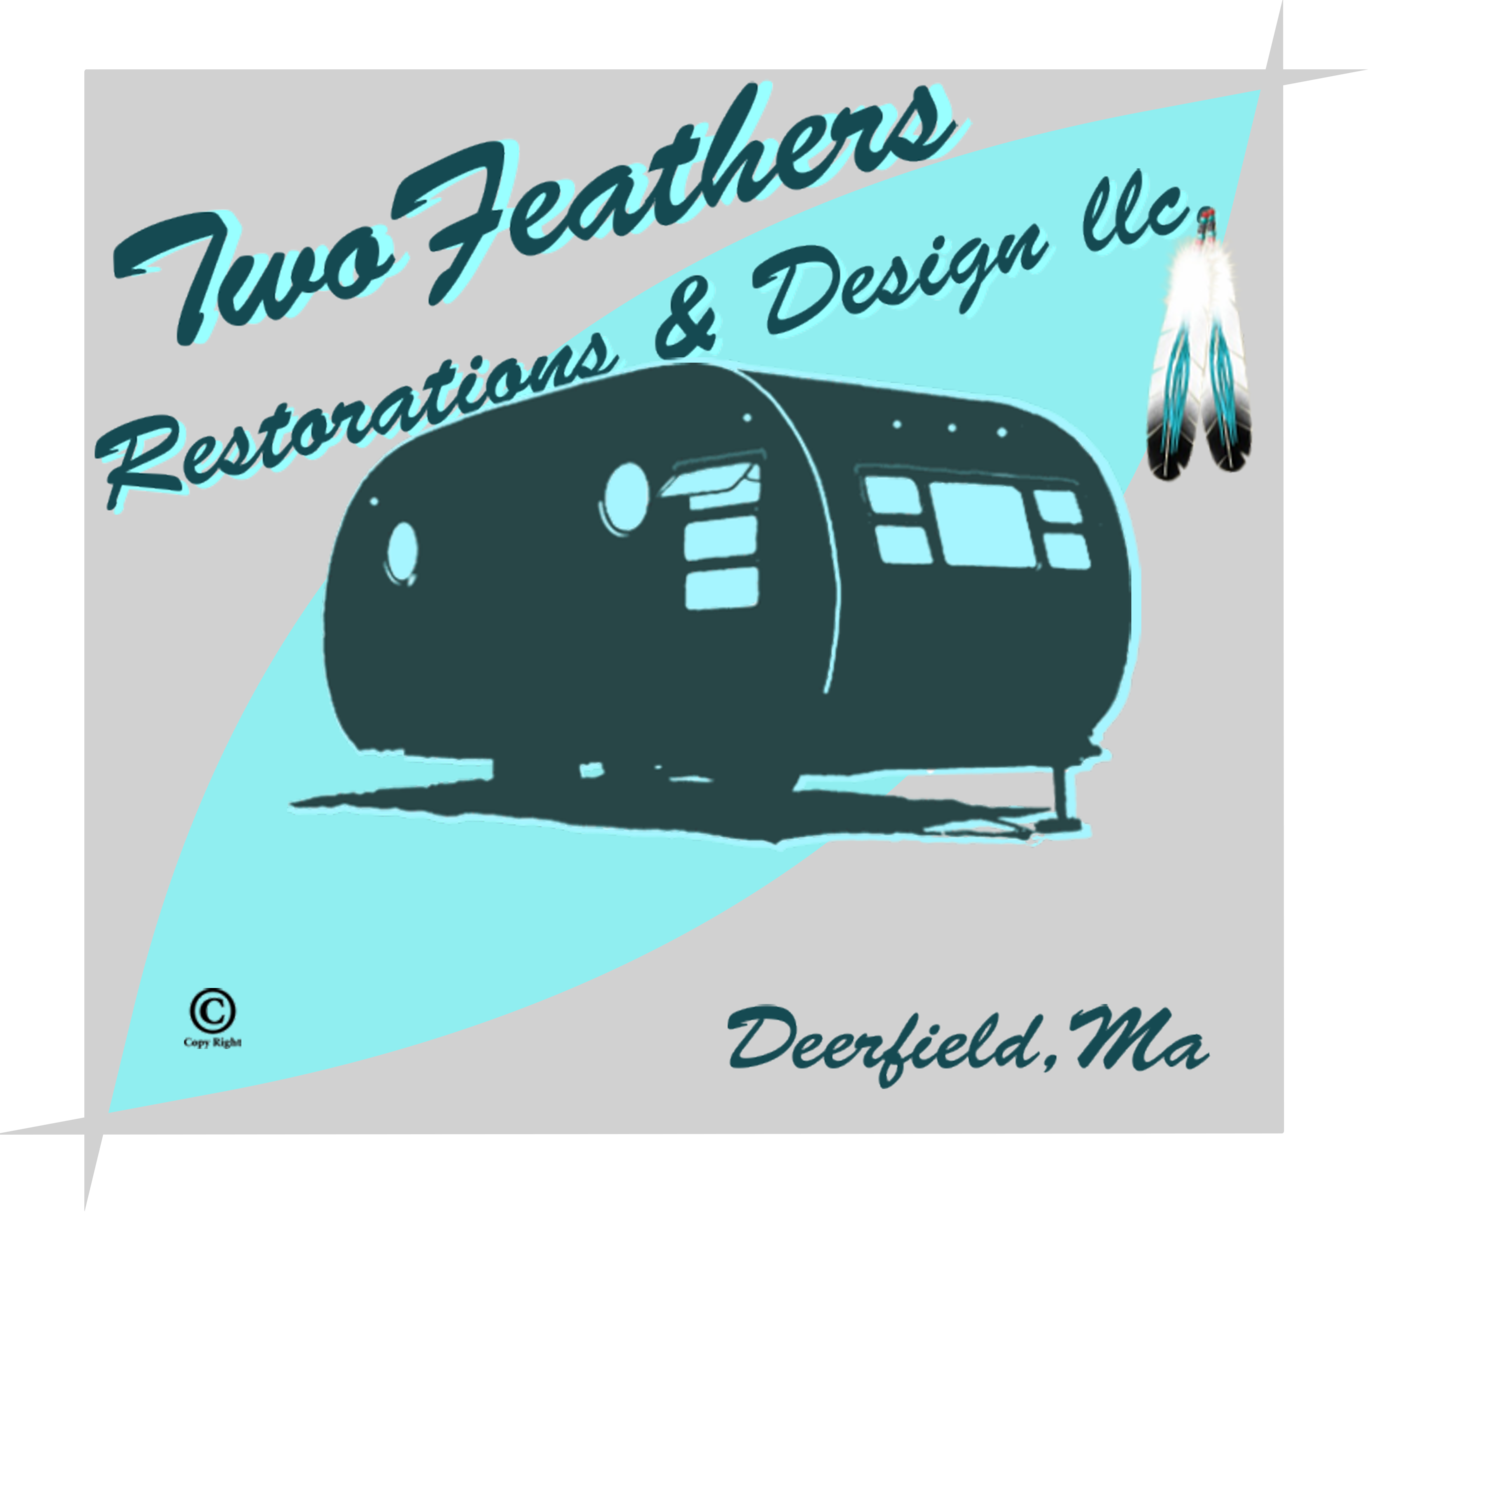 TwoFeathers RV Center